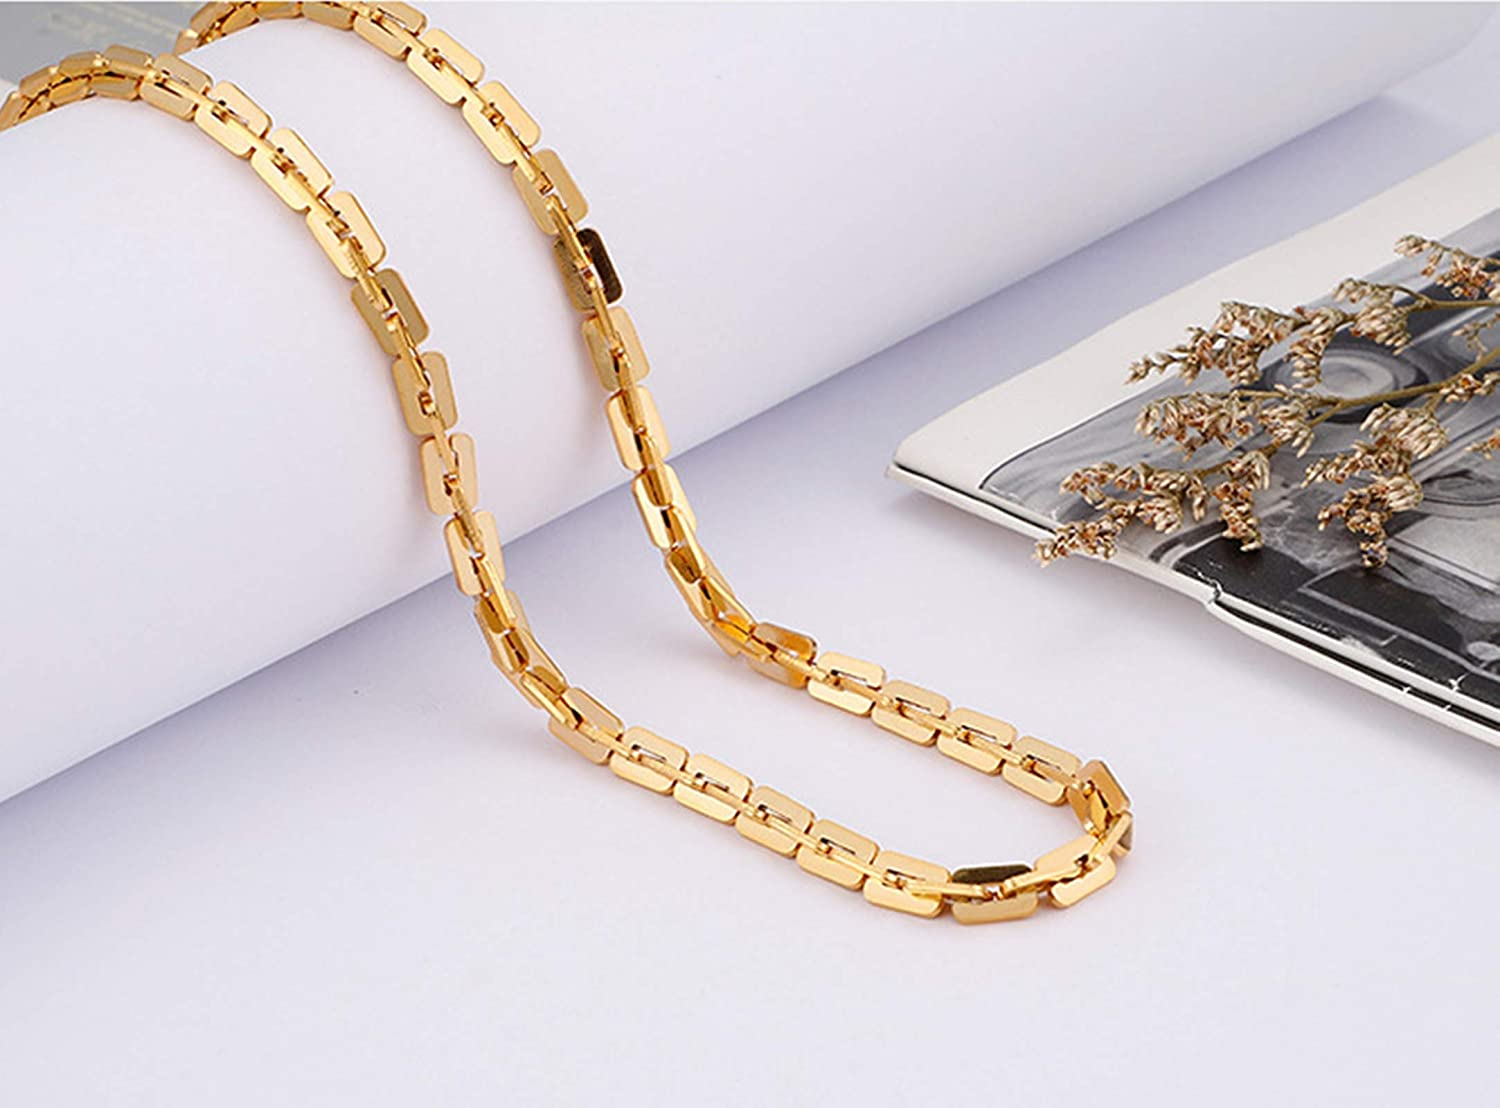 Daesar Stainless Steel Necklaces Mens Women Pendant Necklaces Cable Chain